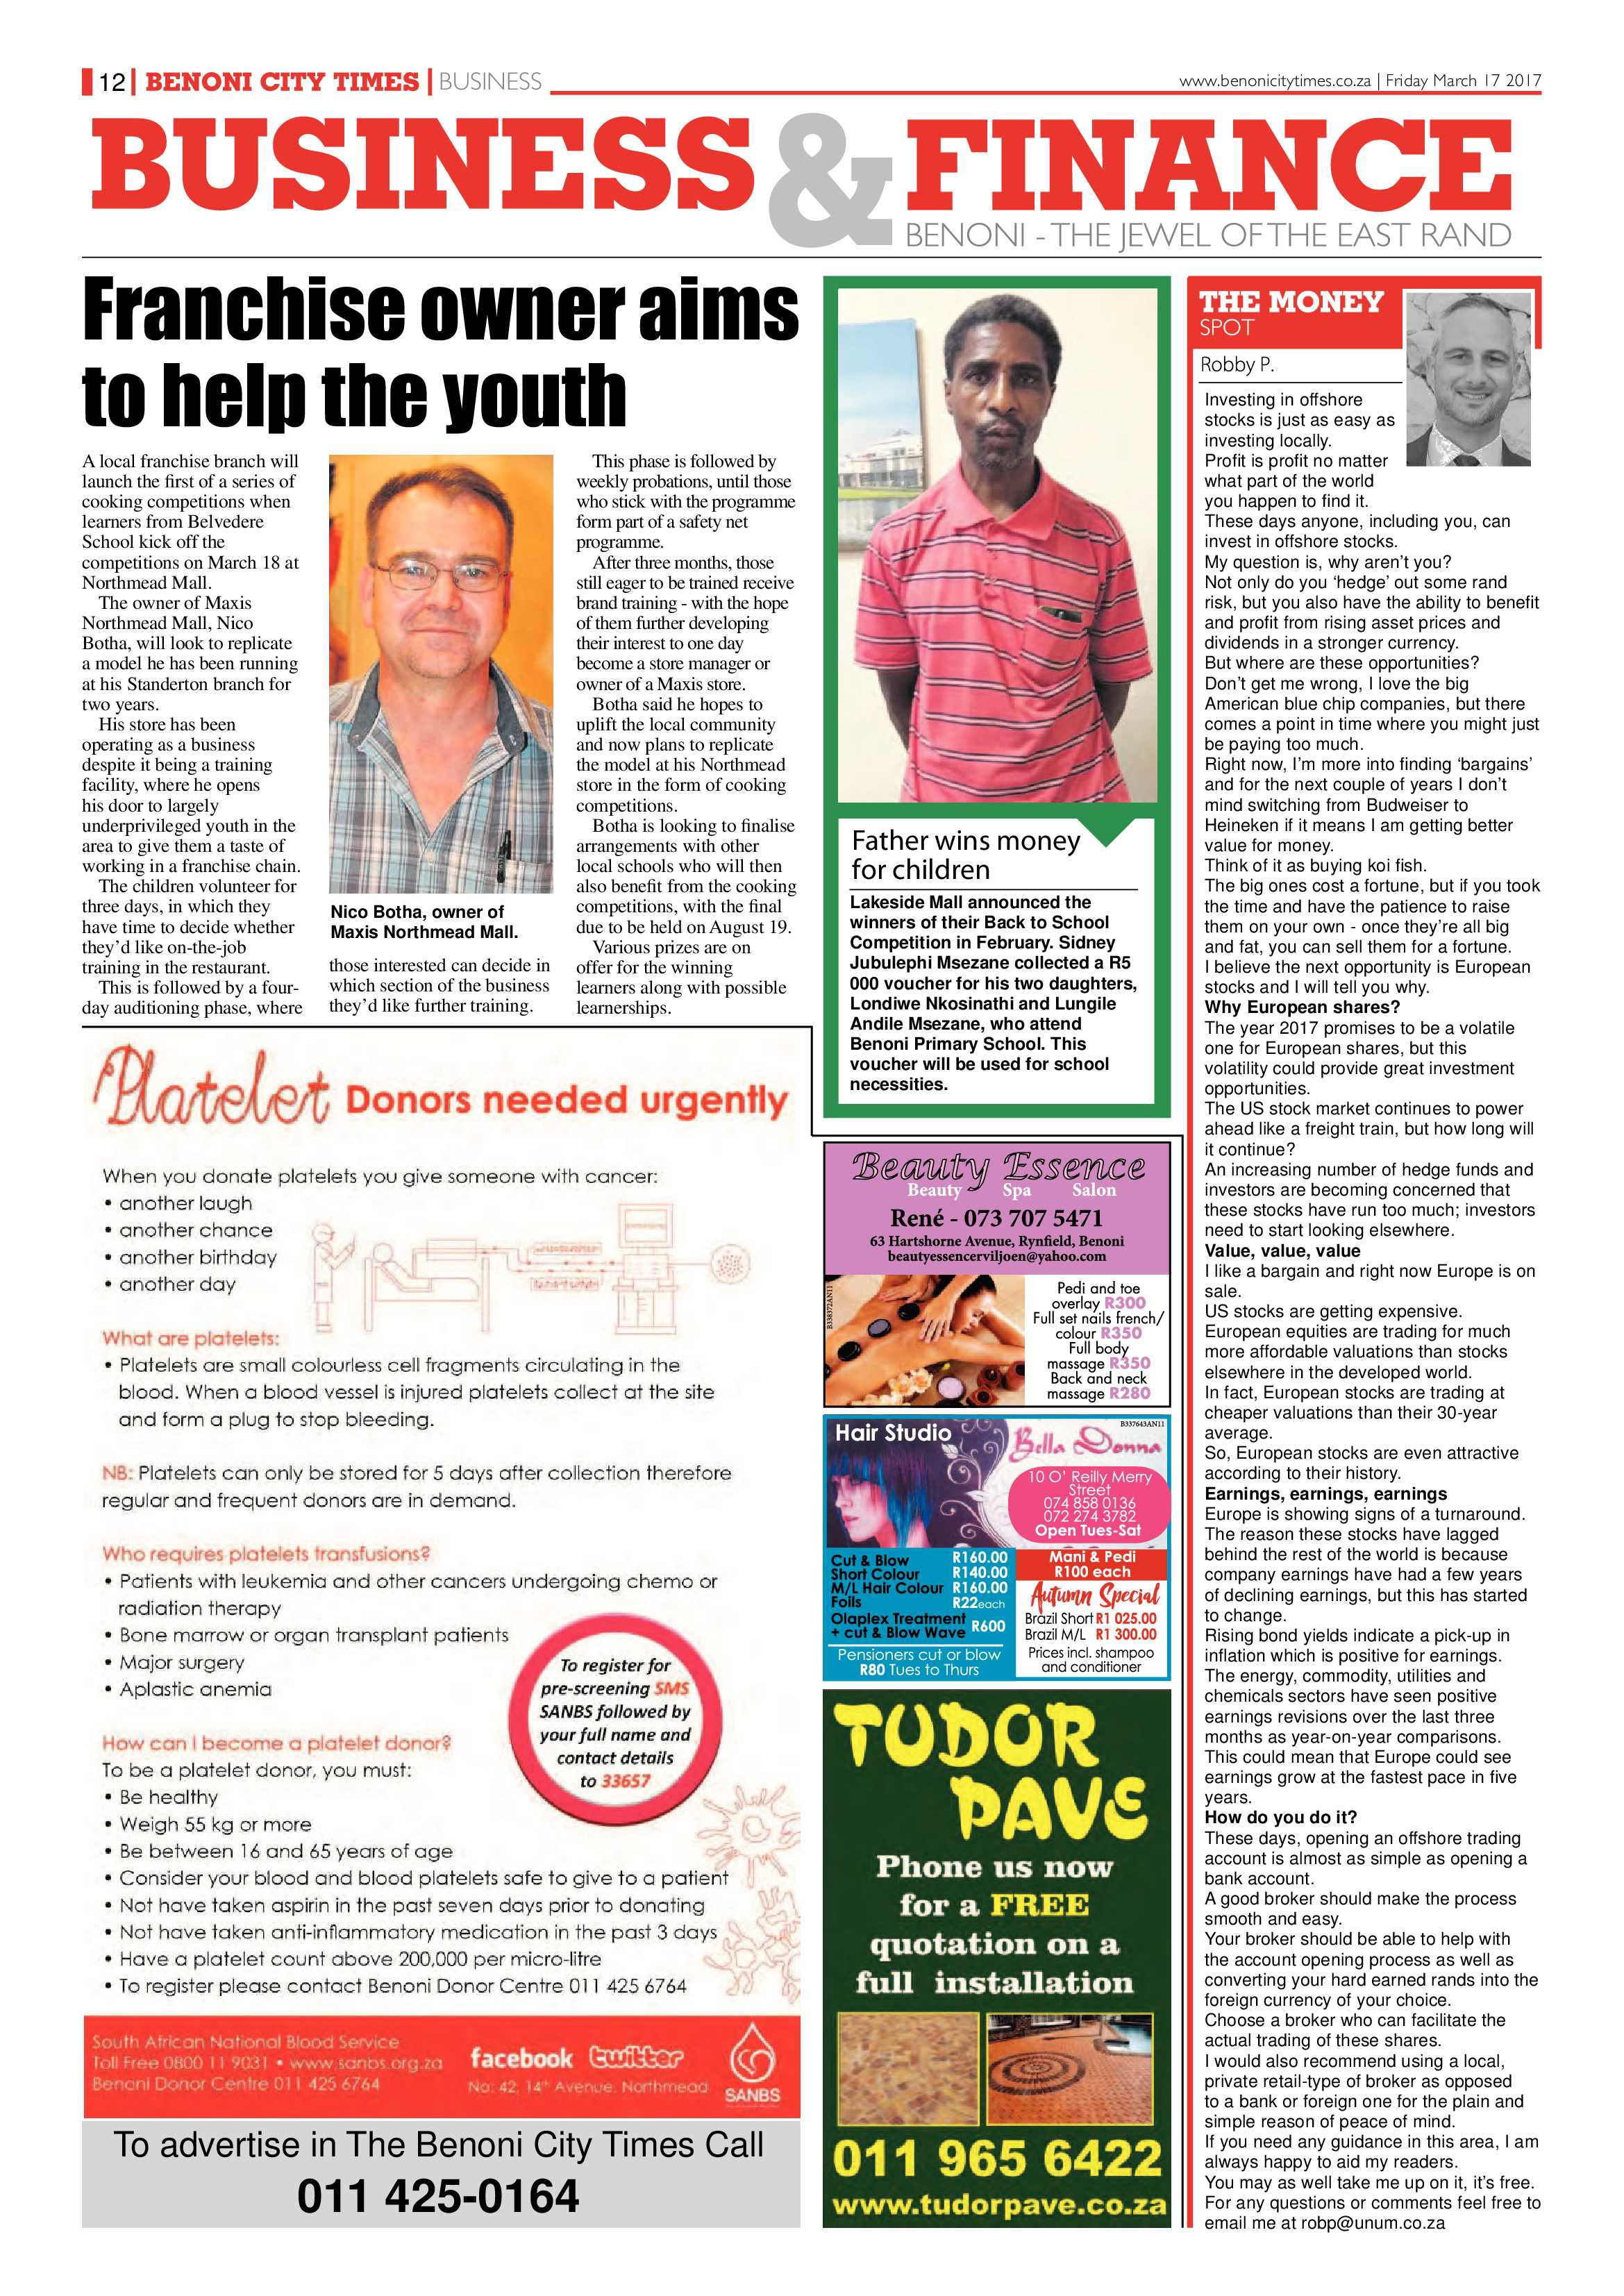 benoni-city-times-16-march-2017-epapers-page-12